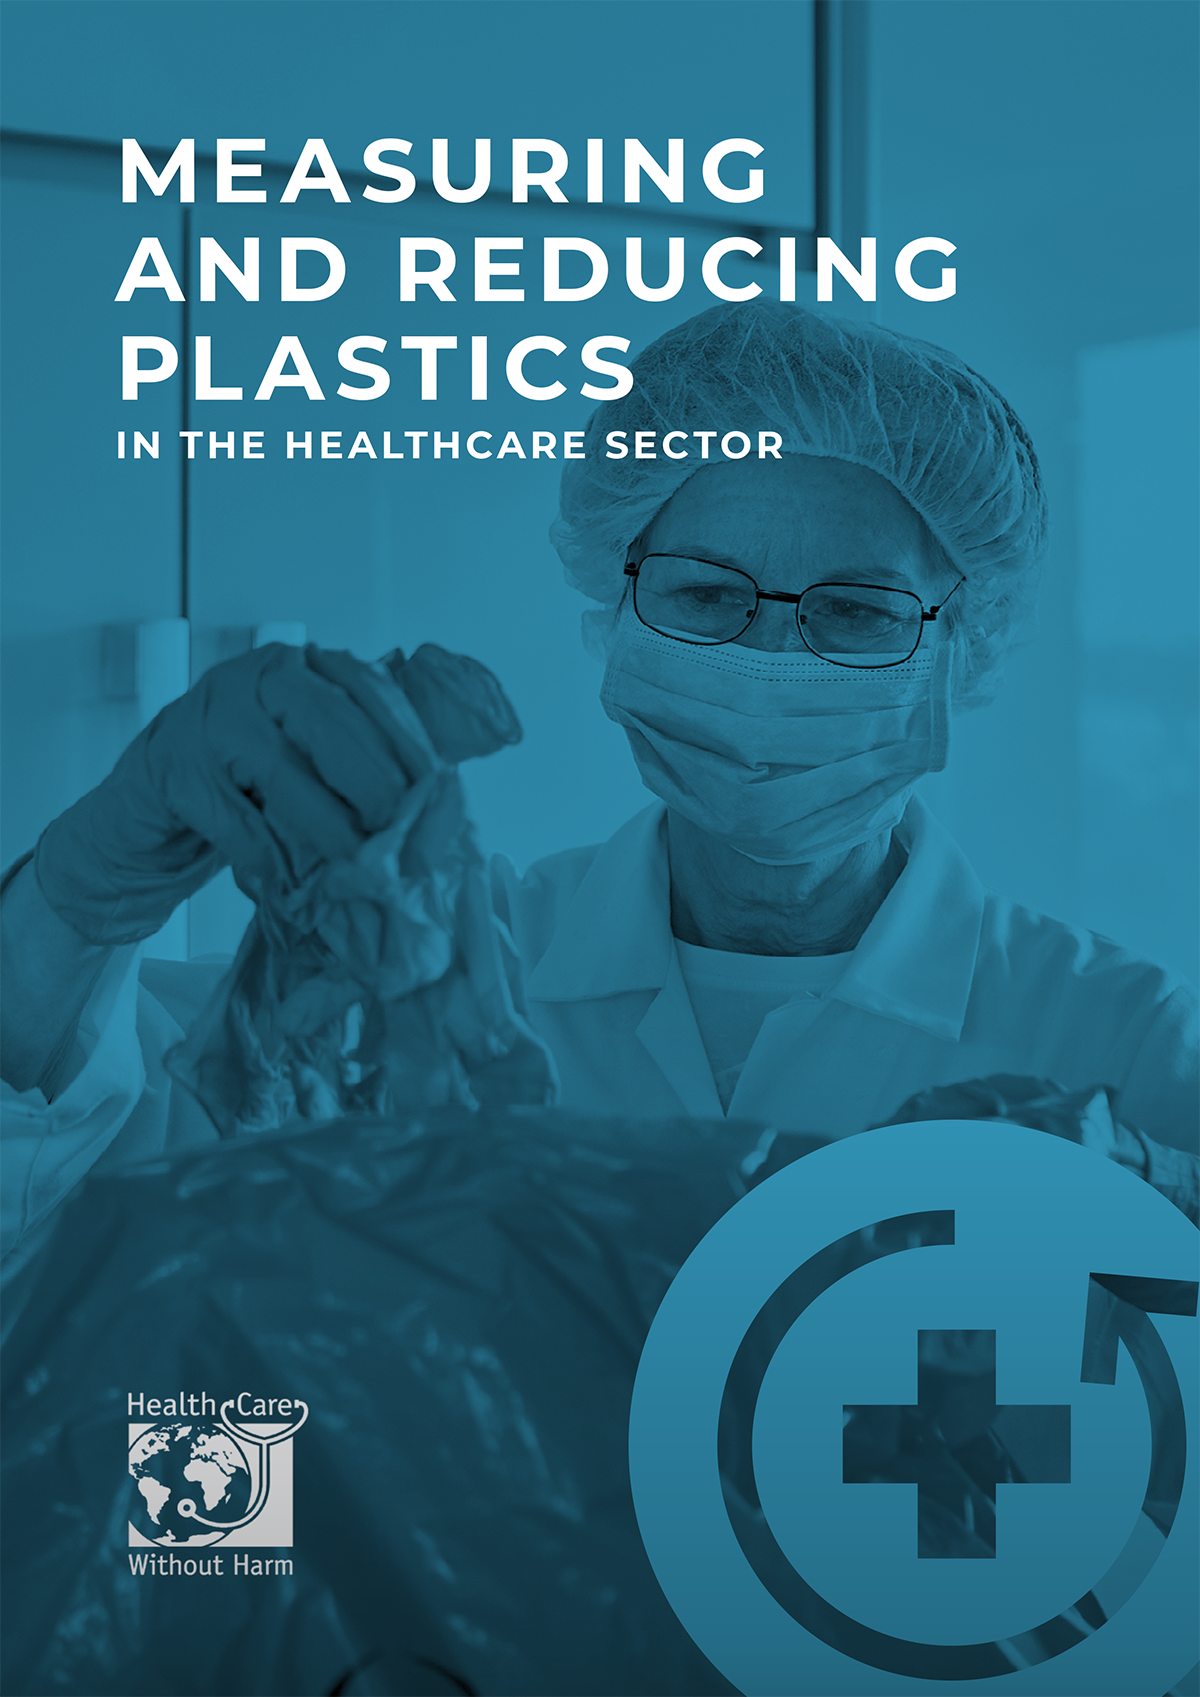 Measuring and reducing plastics in the healthcare sector